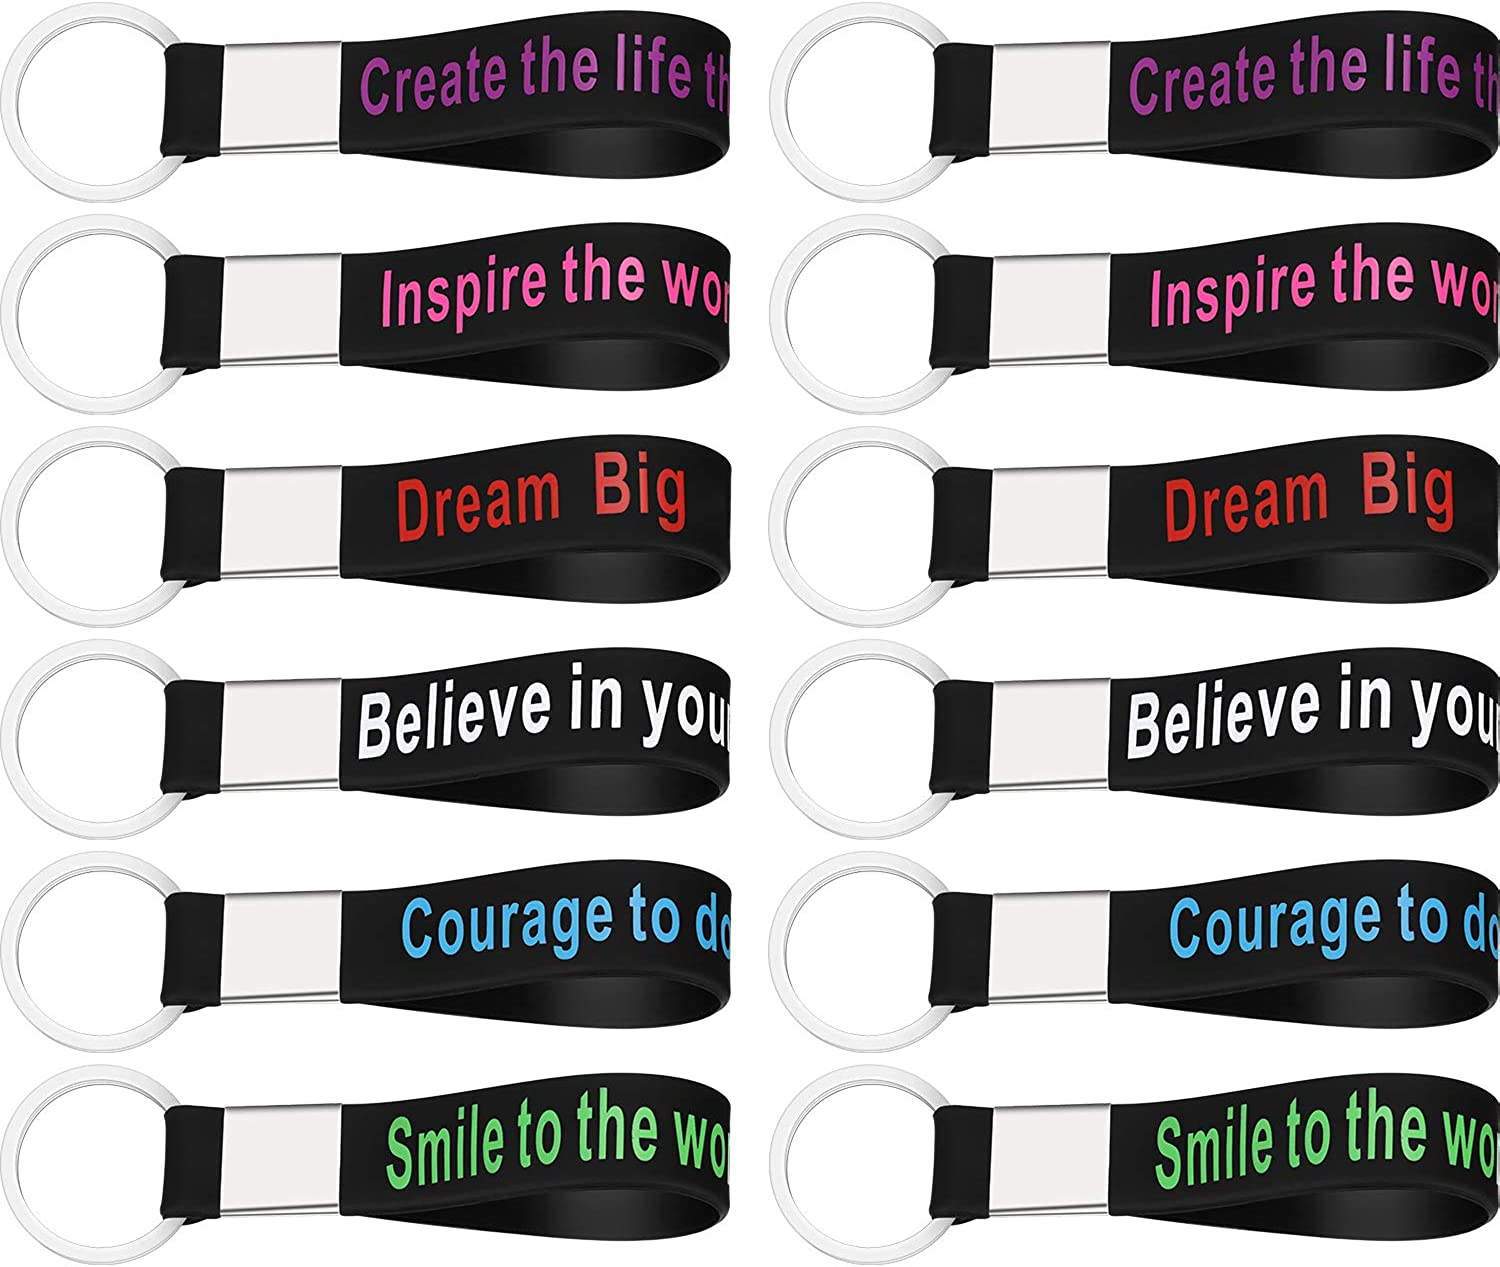 24 Pack Motivational Quote Keychains Silicone Rubber Key Rings with Inspirational Words for Men Women